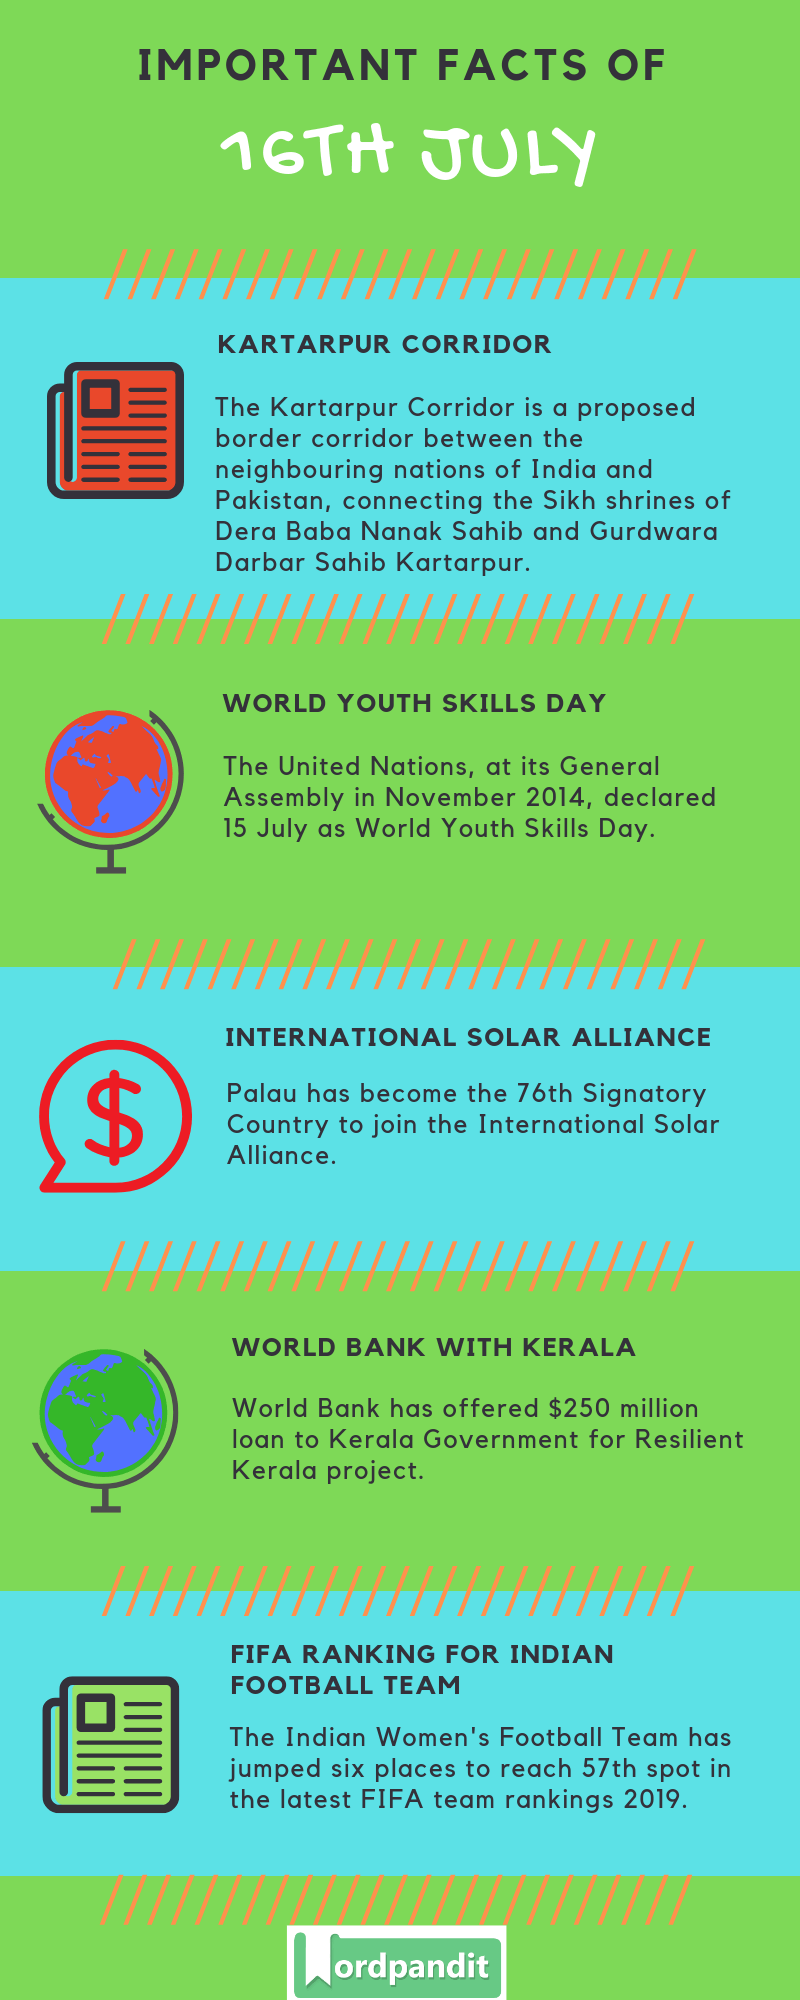 Daily Current Affairs 16 July 2019 Current Affairs Quiz 16 July 2019 Current Affairs Infographic